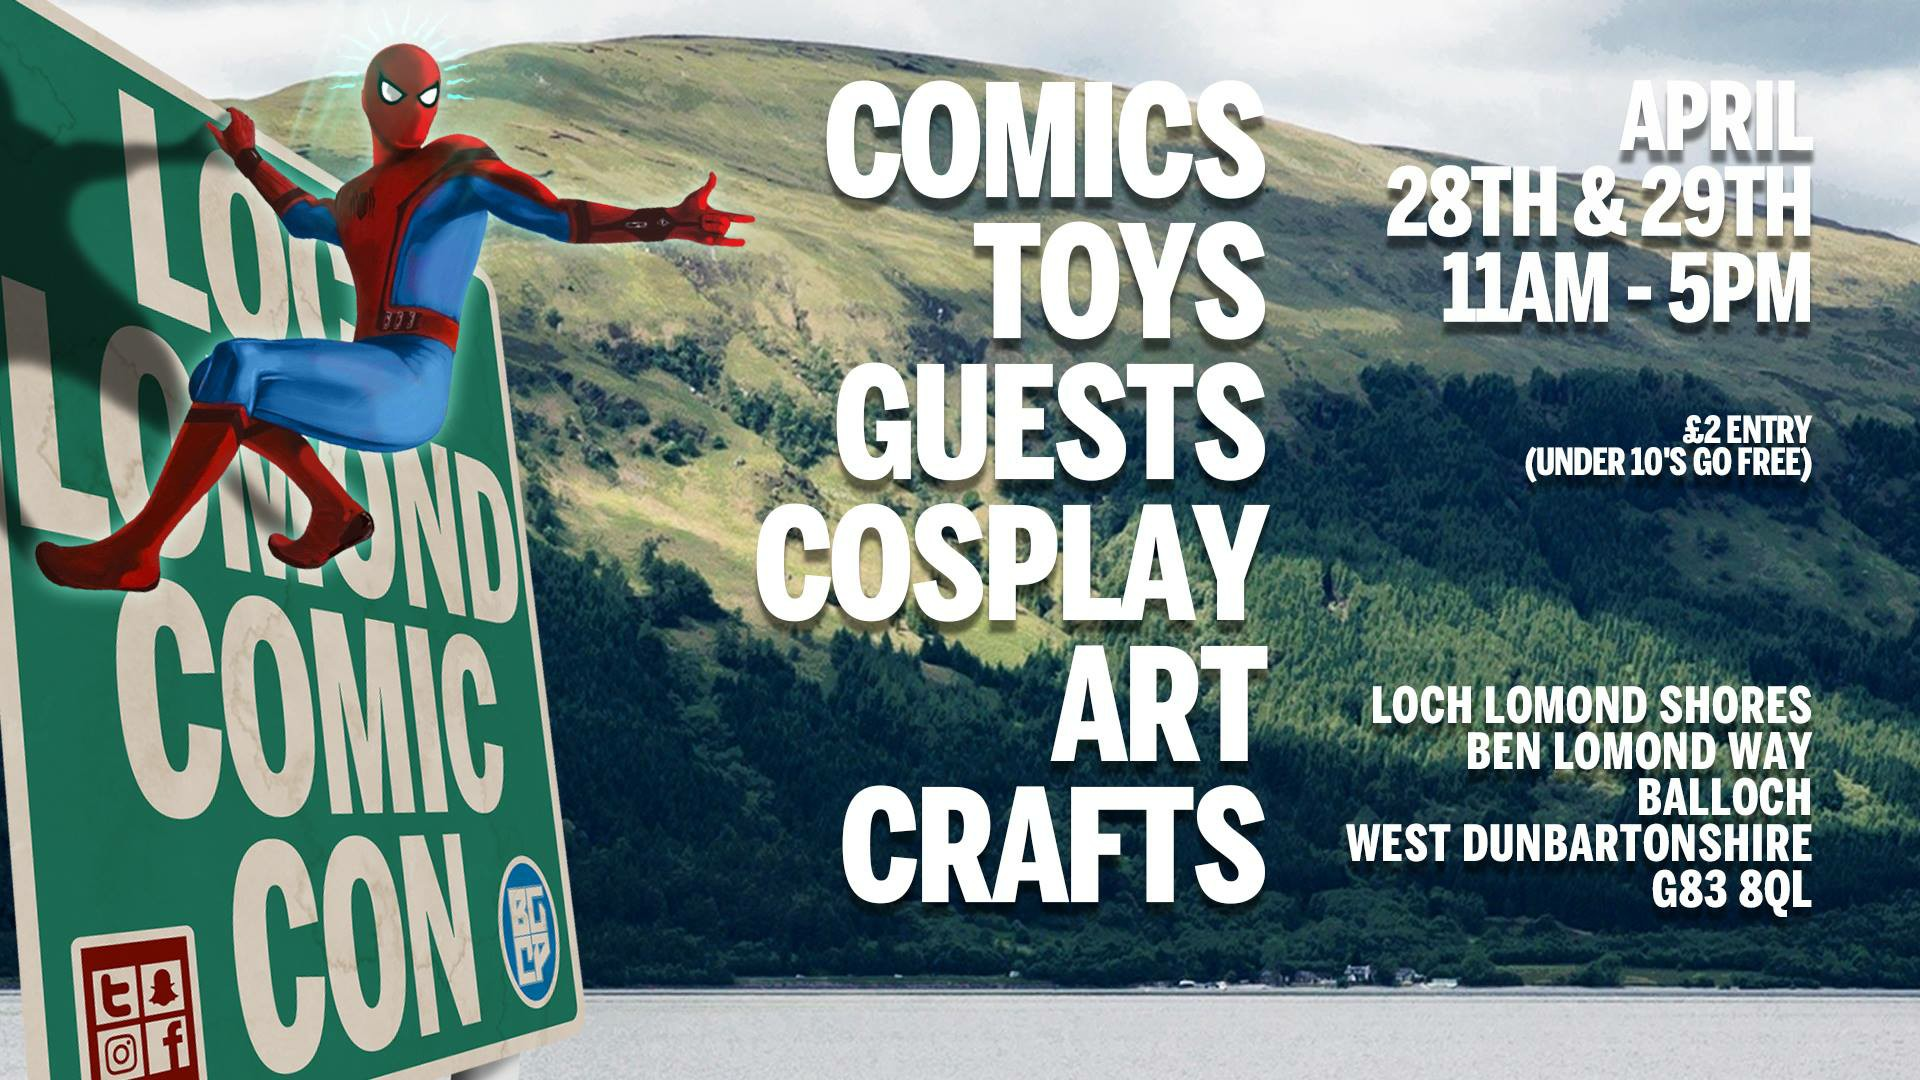 Loch Lomond Comic Con